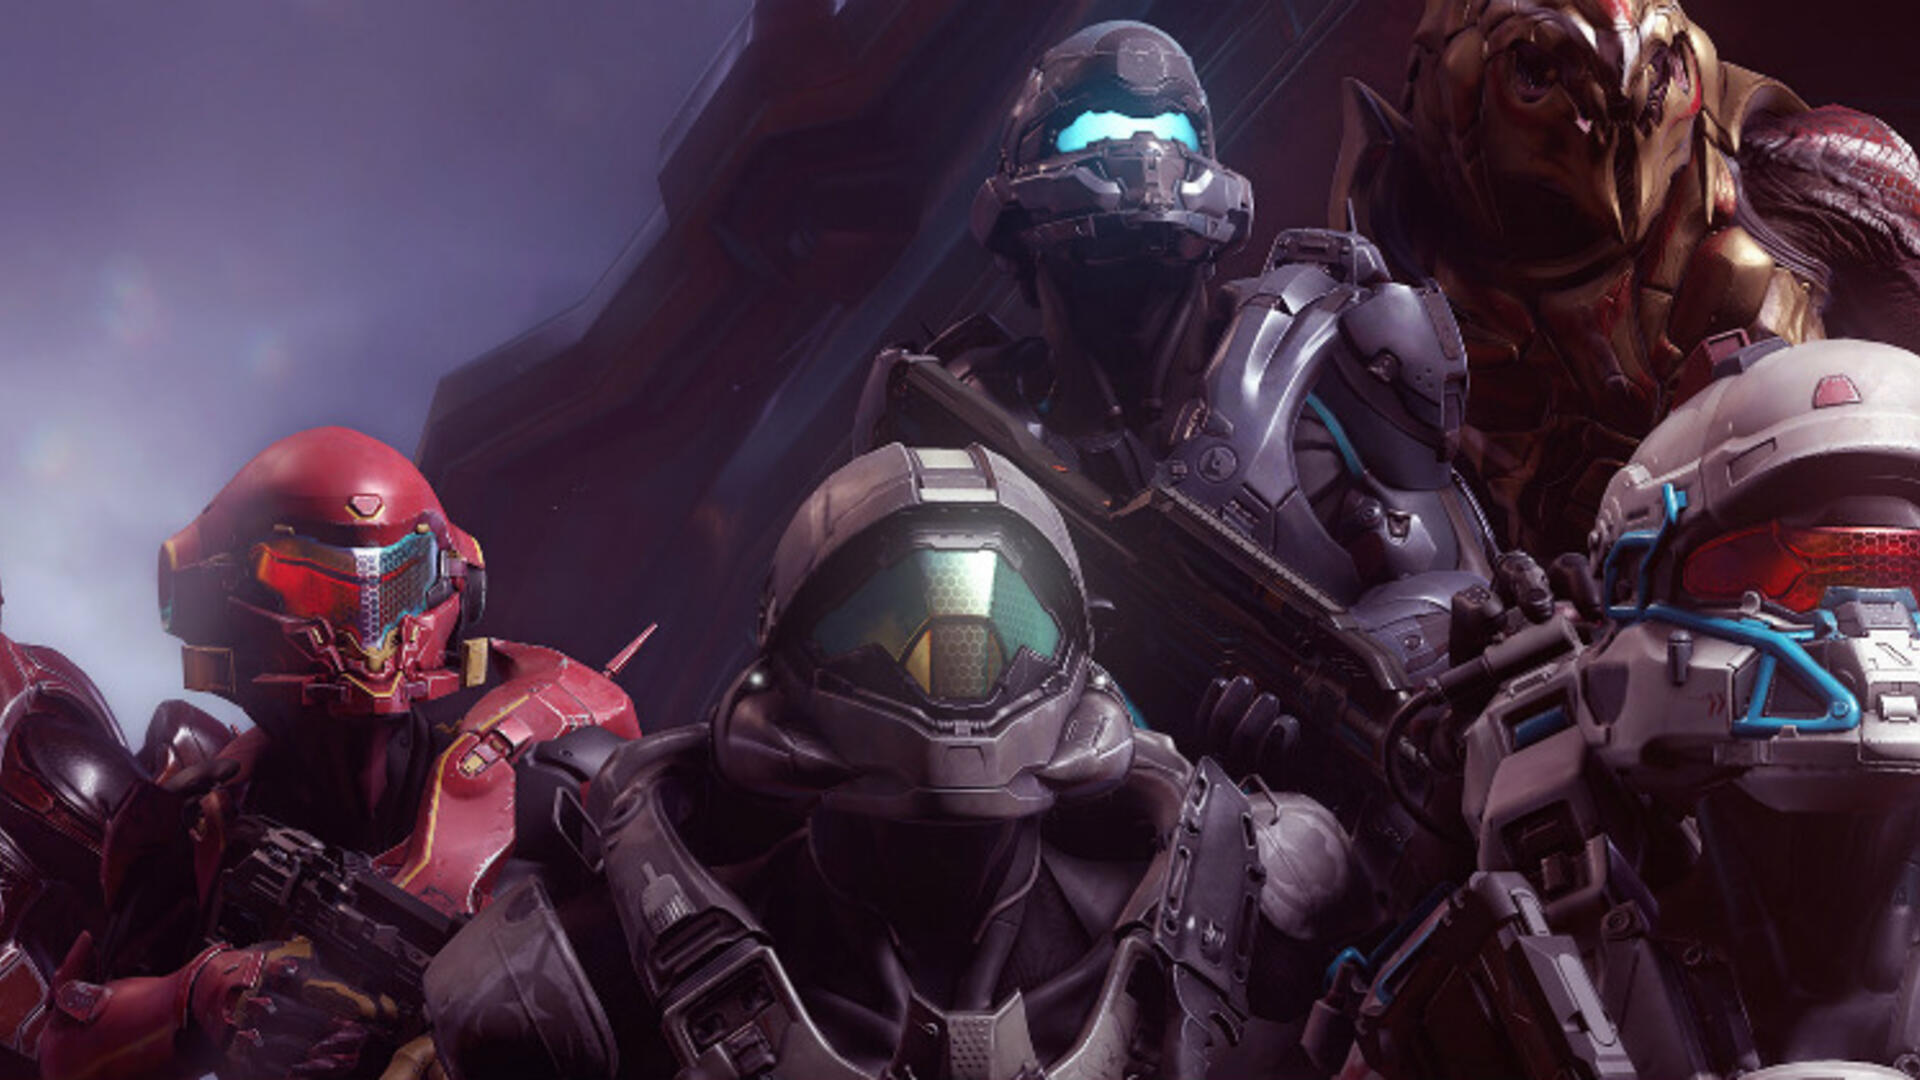 Halo 5 is Rated T: The Beginning of ESRB Ratings Creep